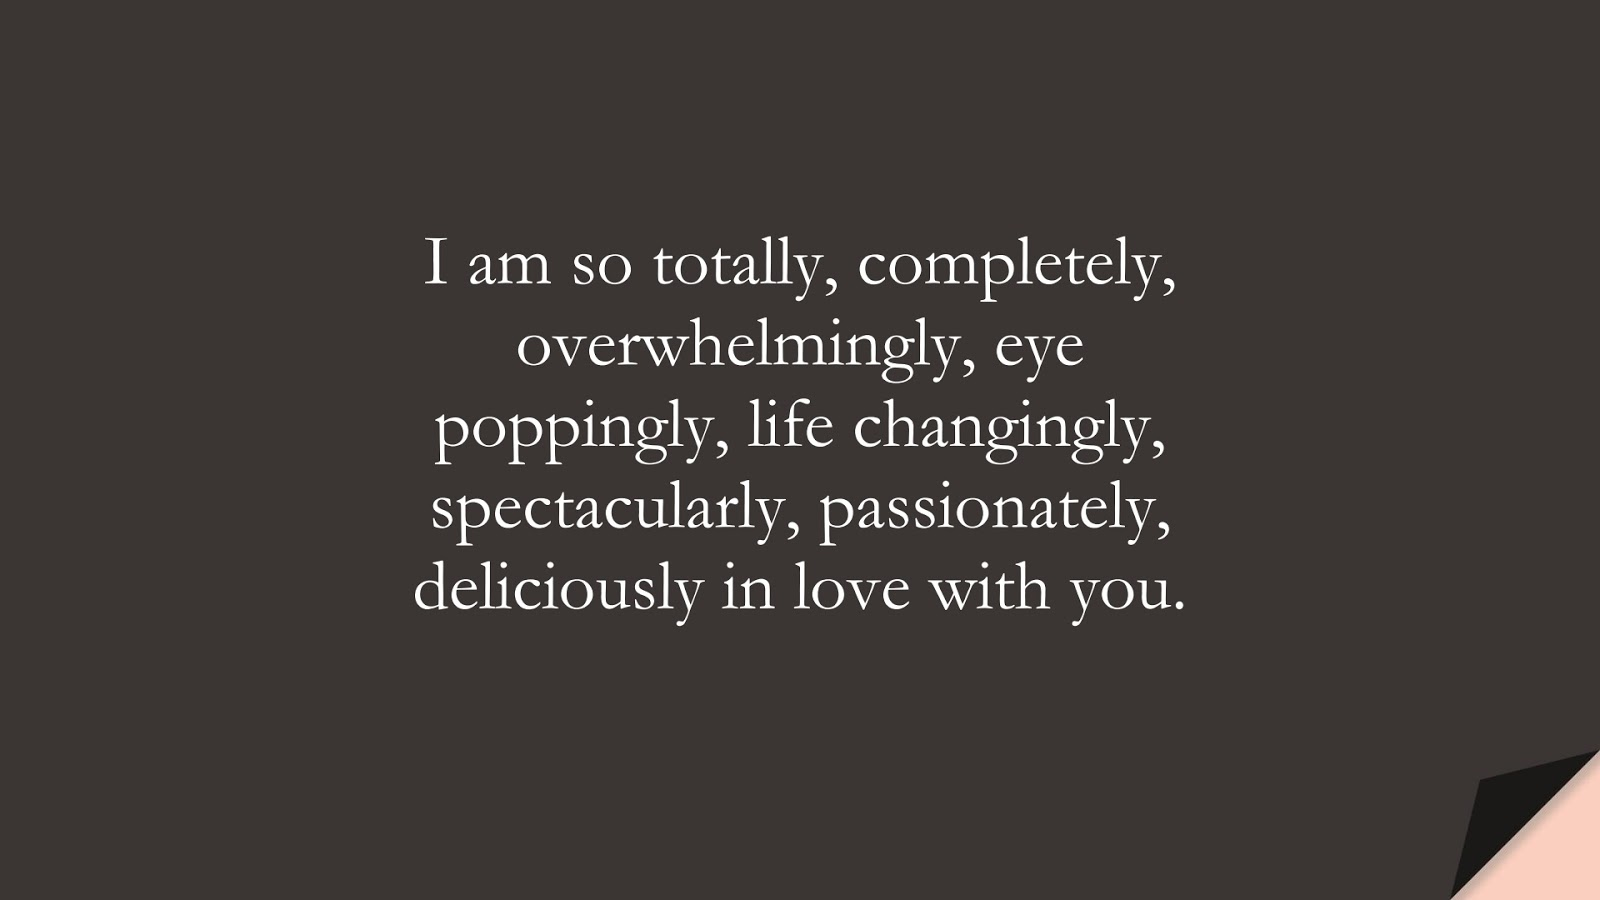 I am so totally, completely, overwhelmingly, eye poppingly, life changingly, spectacularly, passionately, deliciously in love with you.FALSE